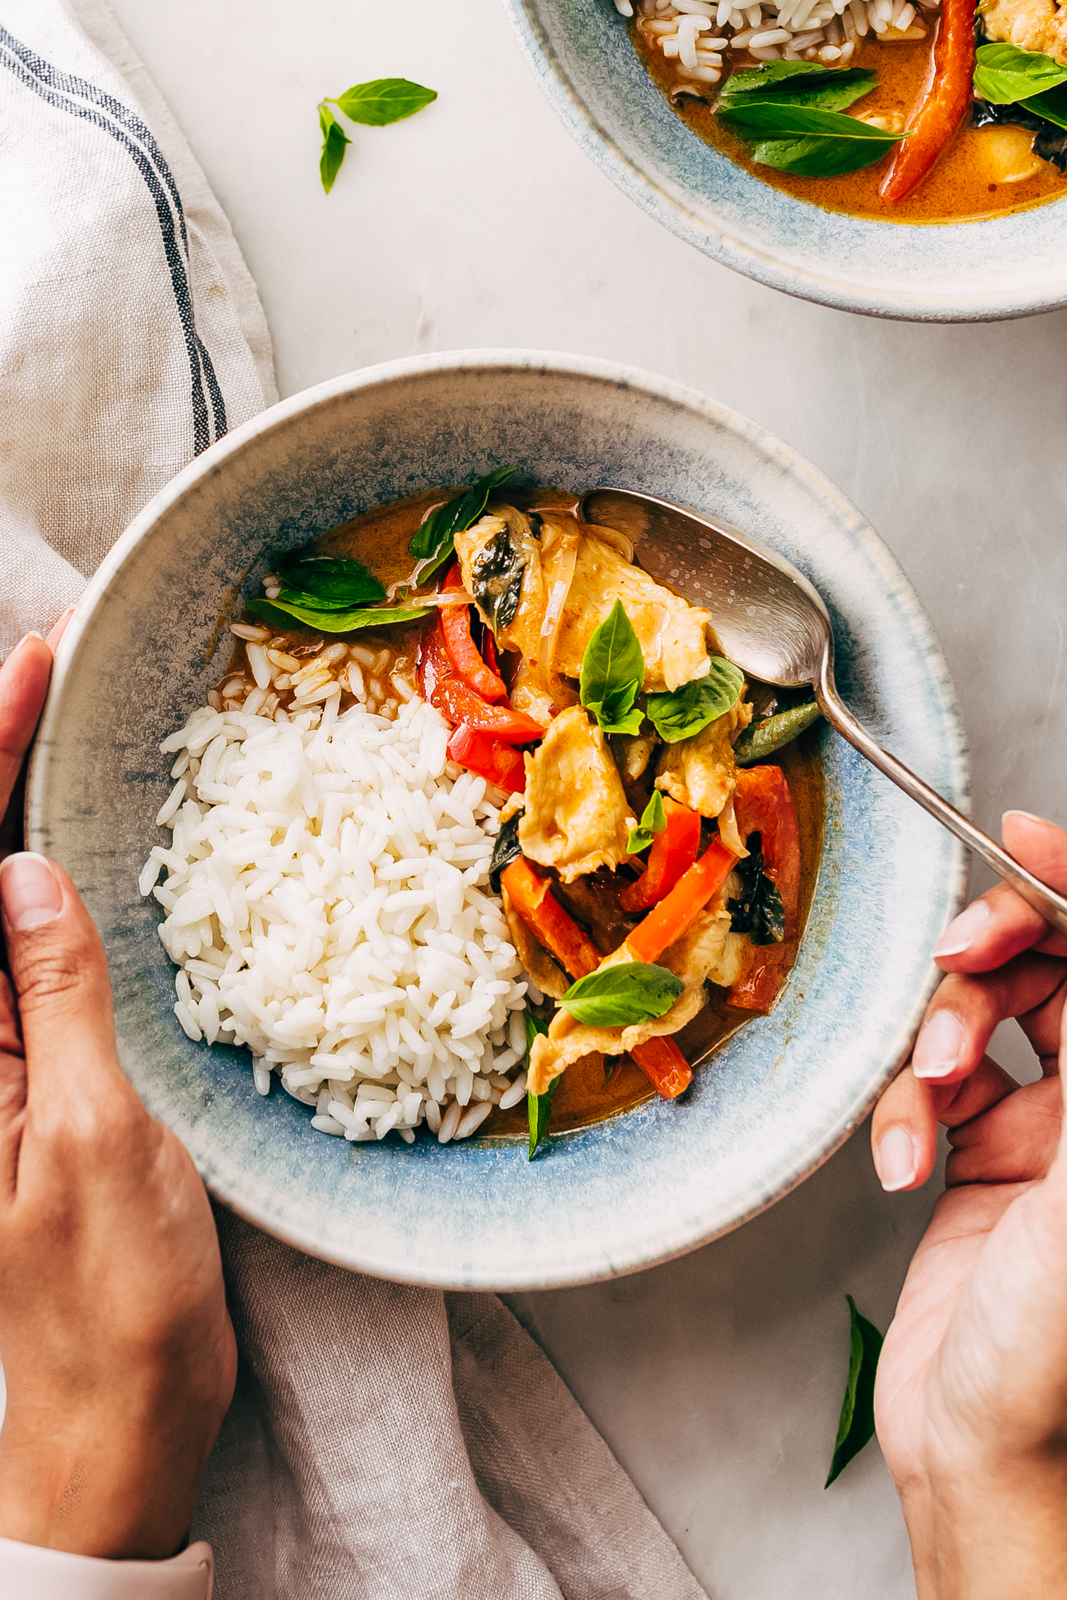 panang curry in bowl with rice white with hands grabbing some on a spoon